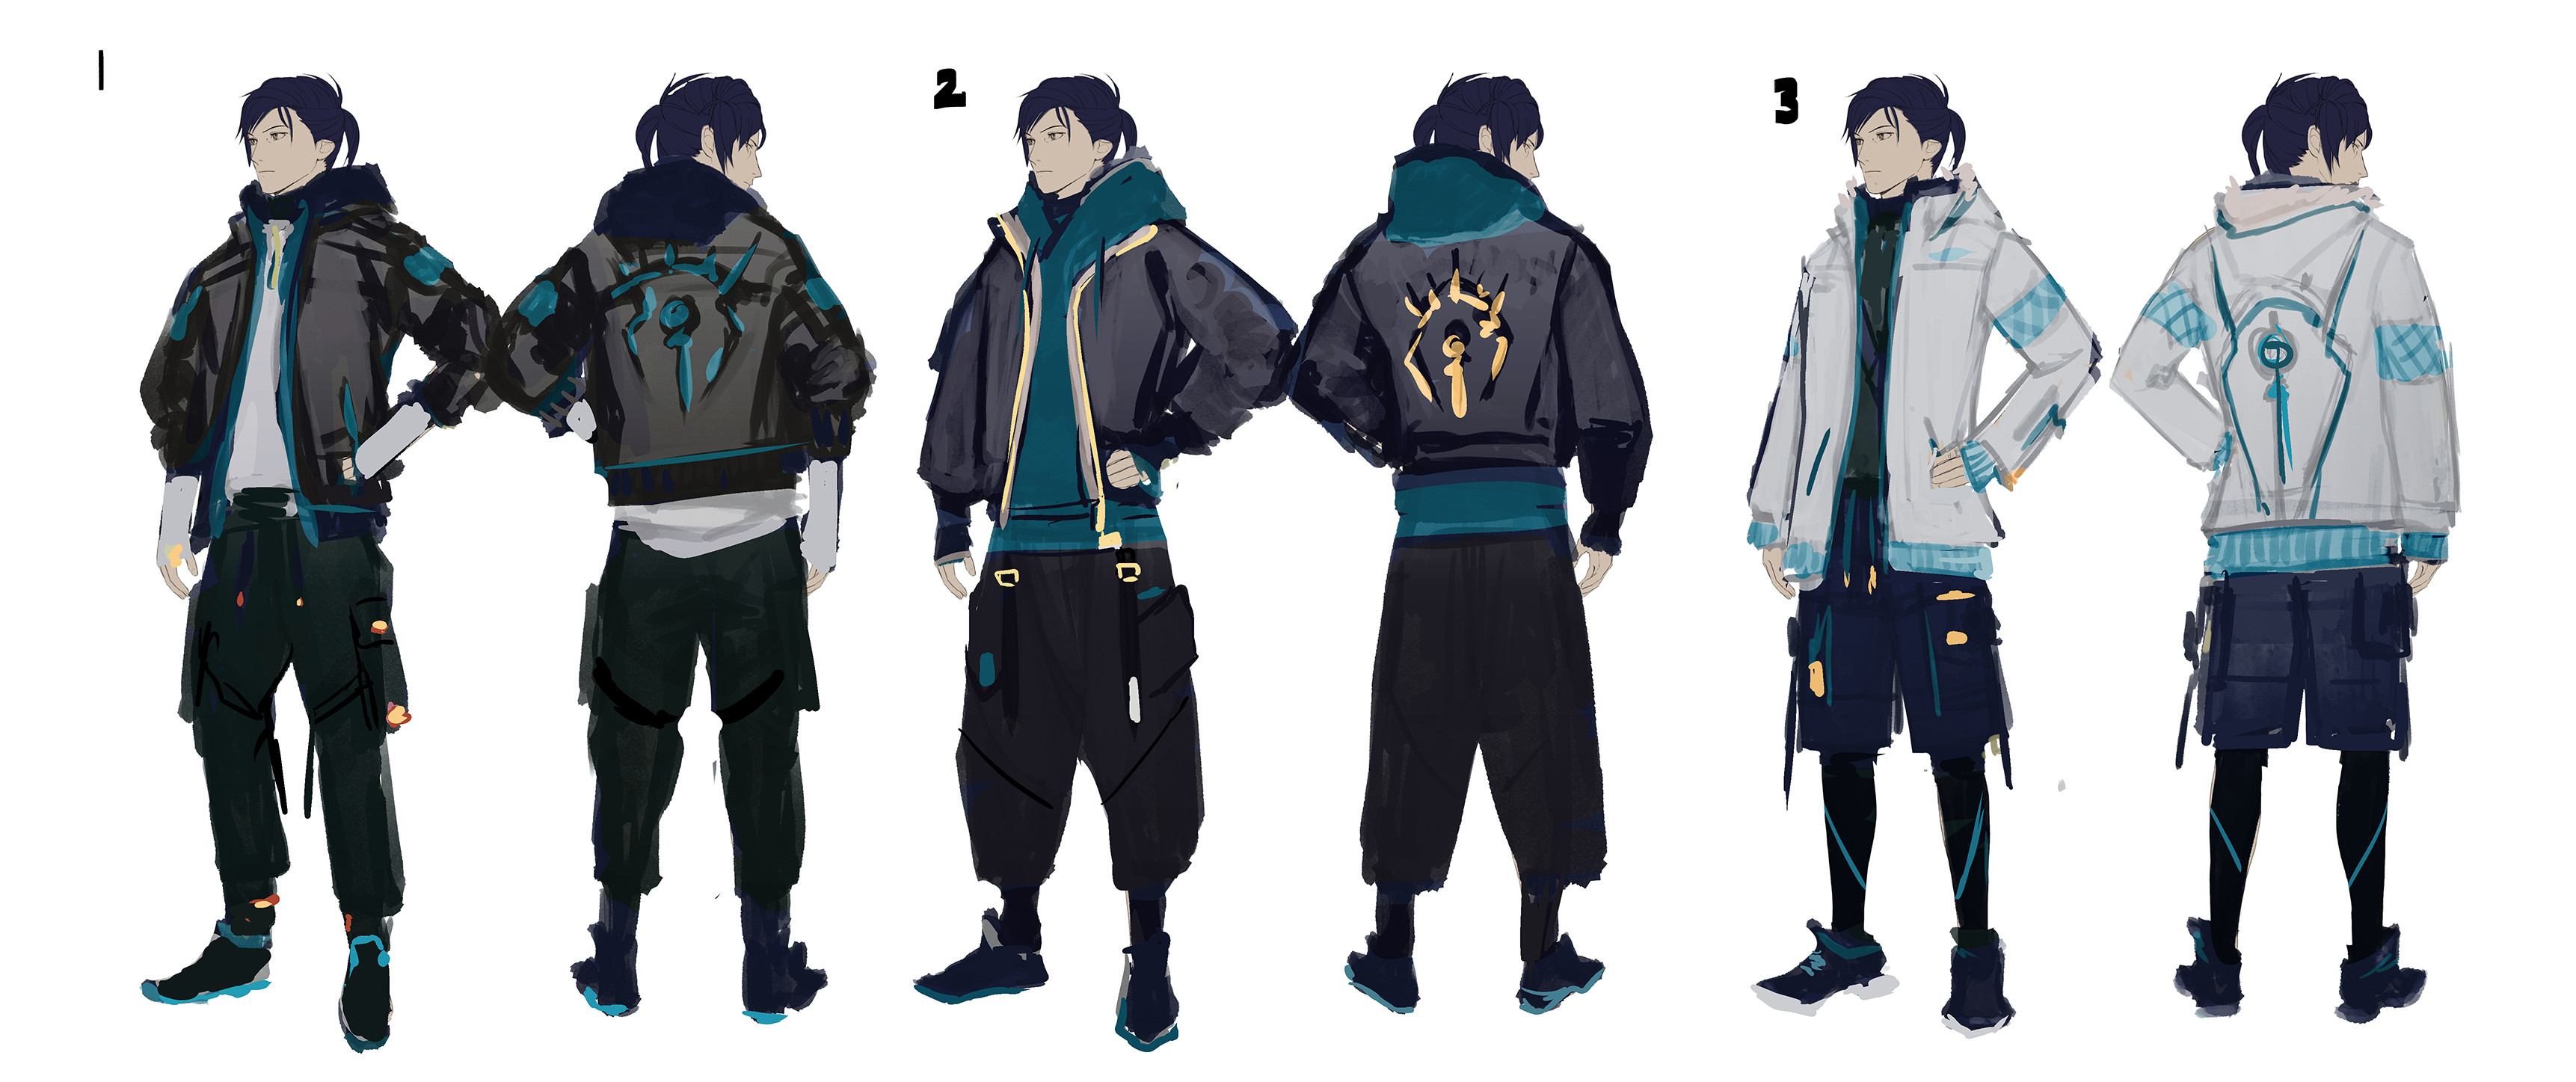 outfit ideas and concepts